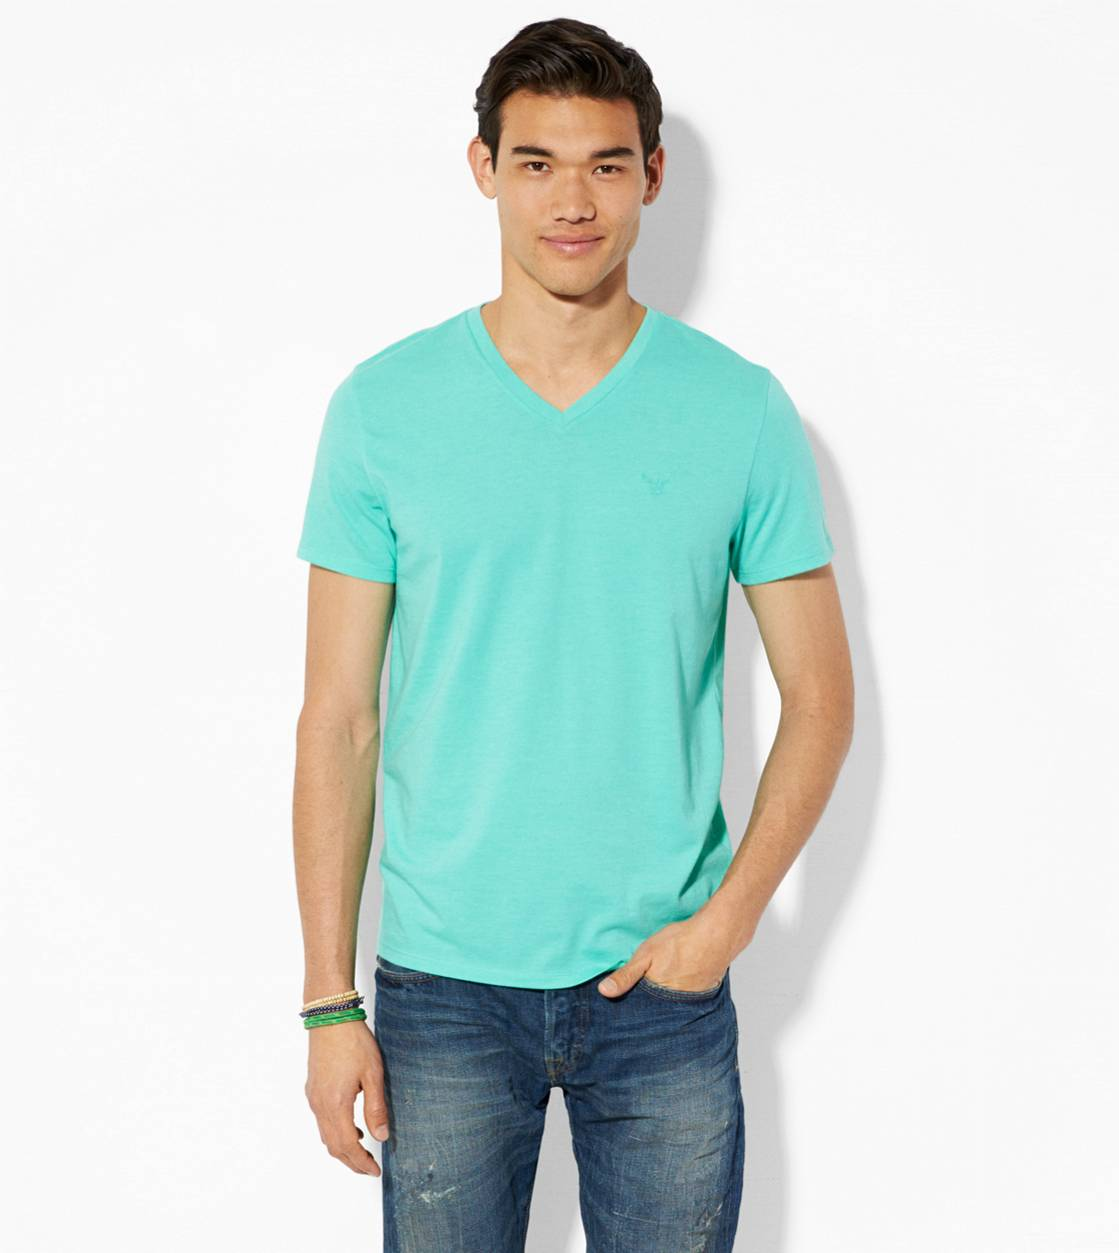 Aqua Mist AE Legend V-Neck T-Shirt